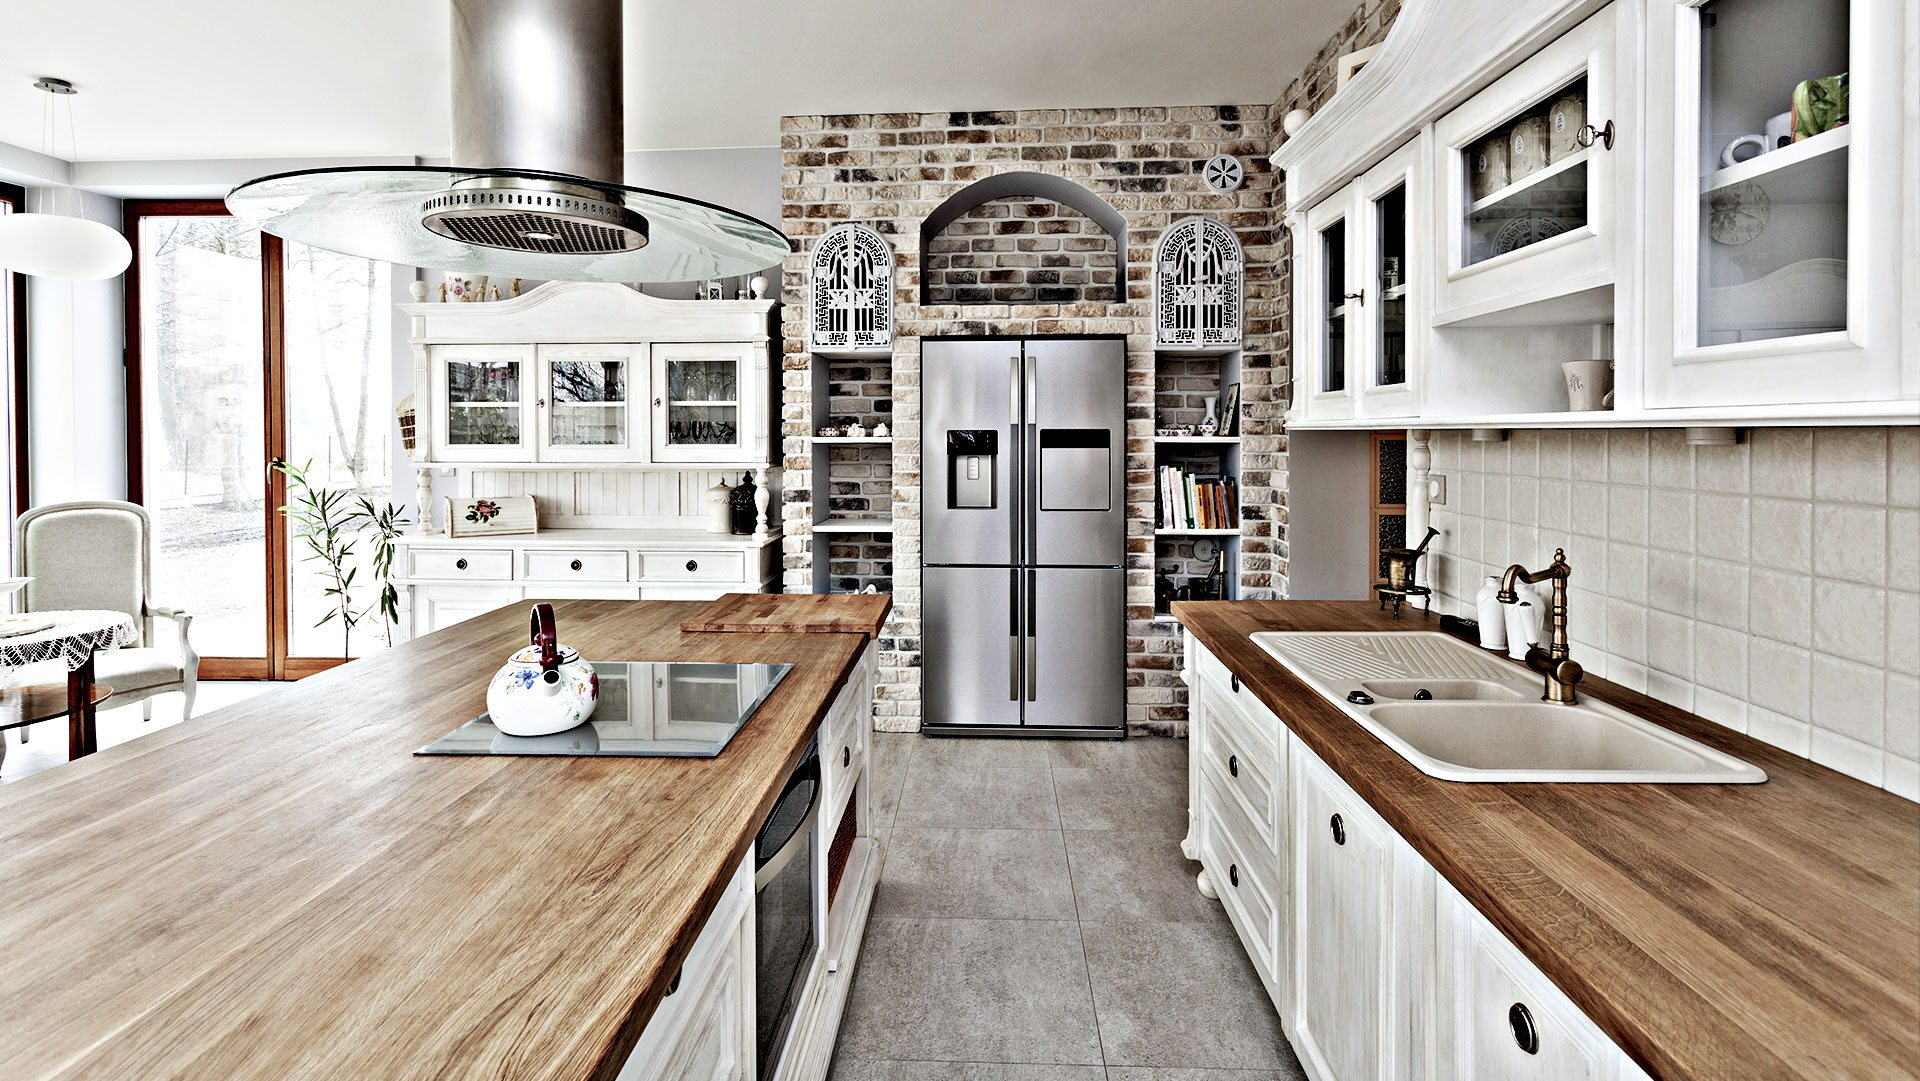 Spencer & Sons Construction Remodeled Kitchen 1